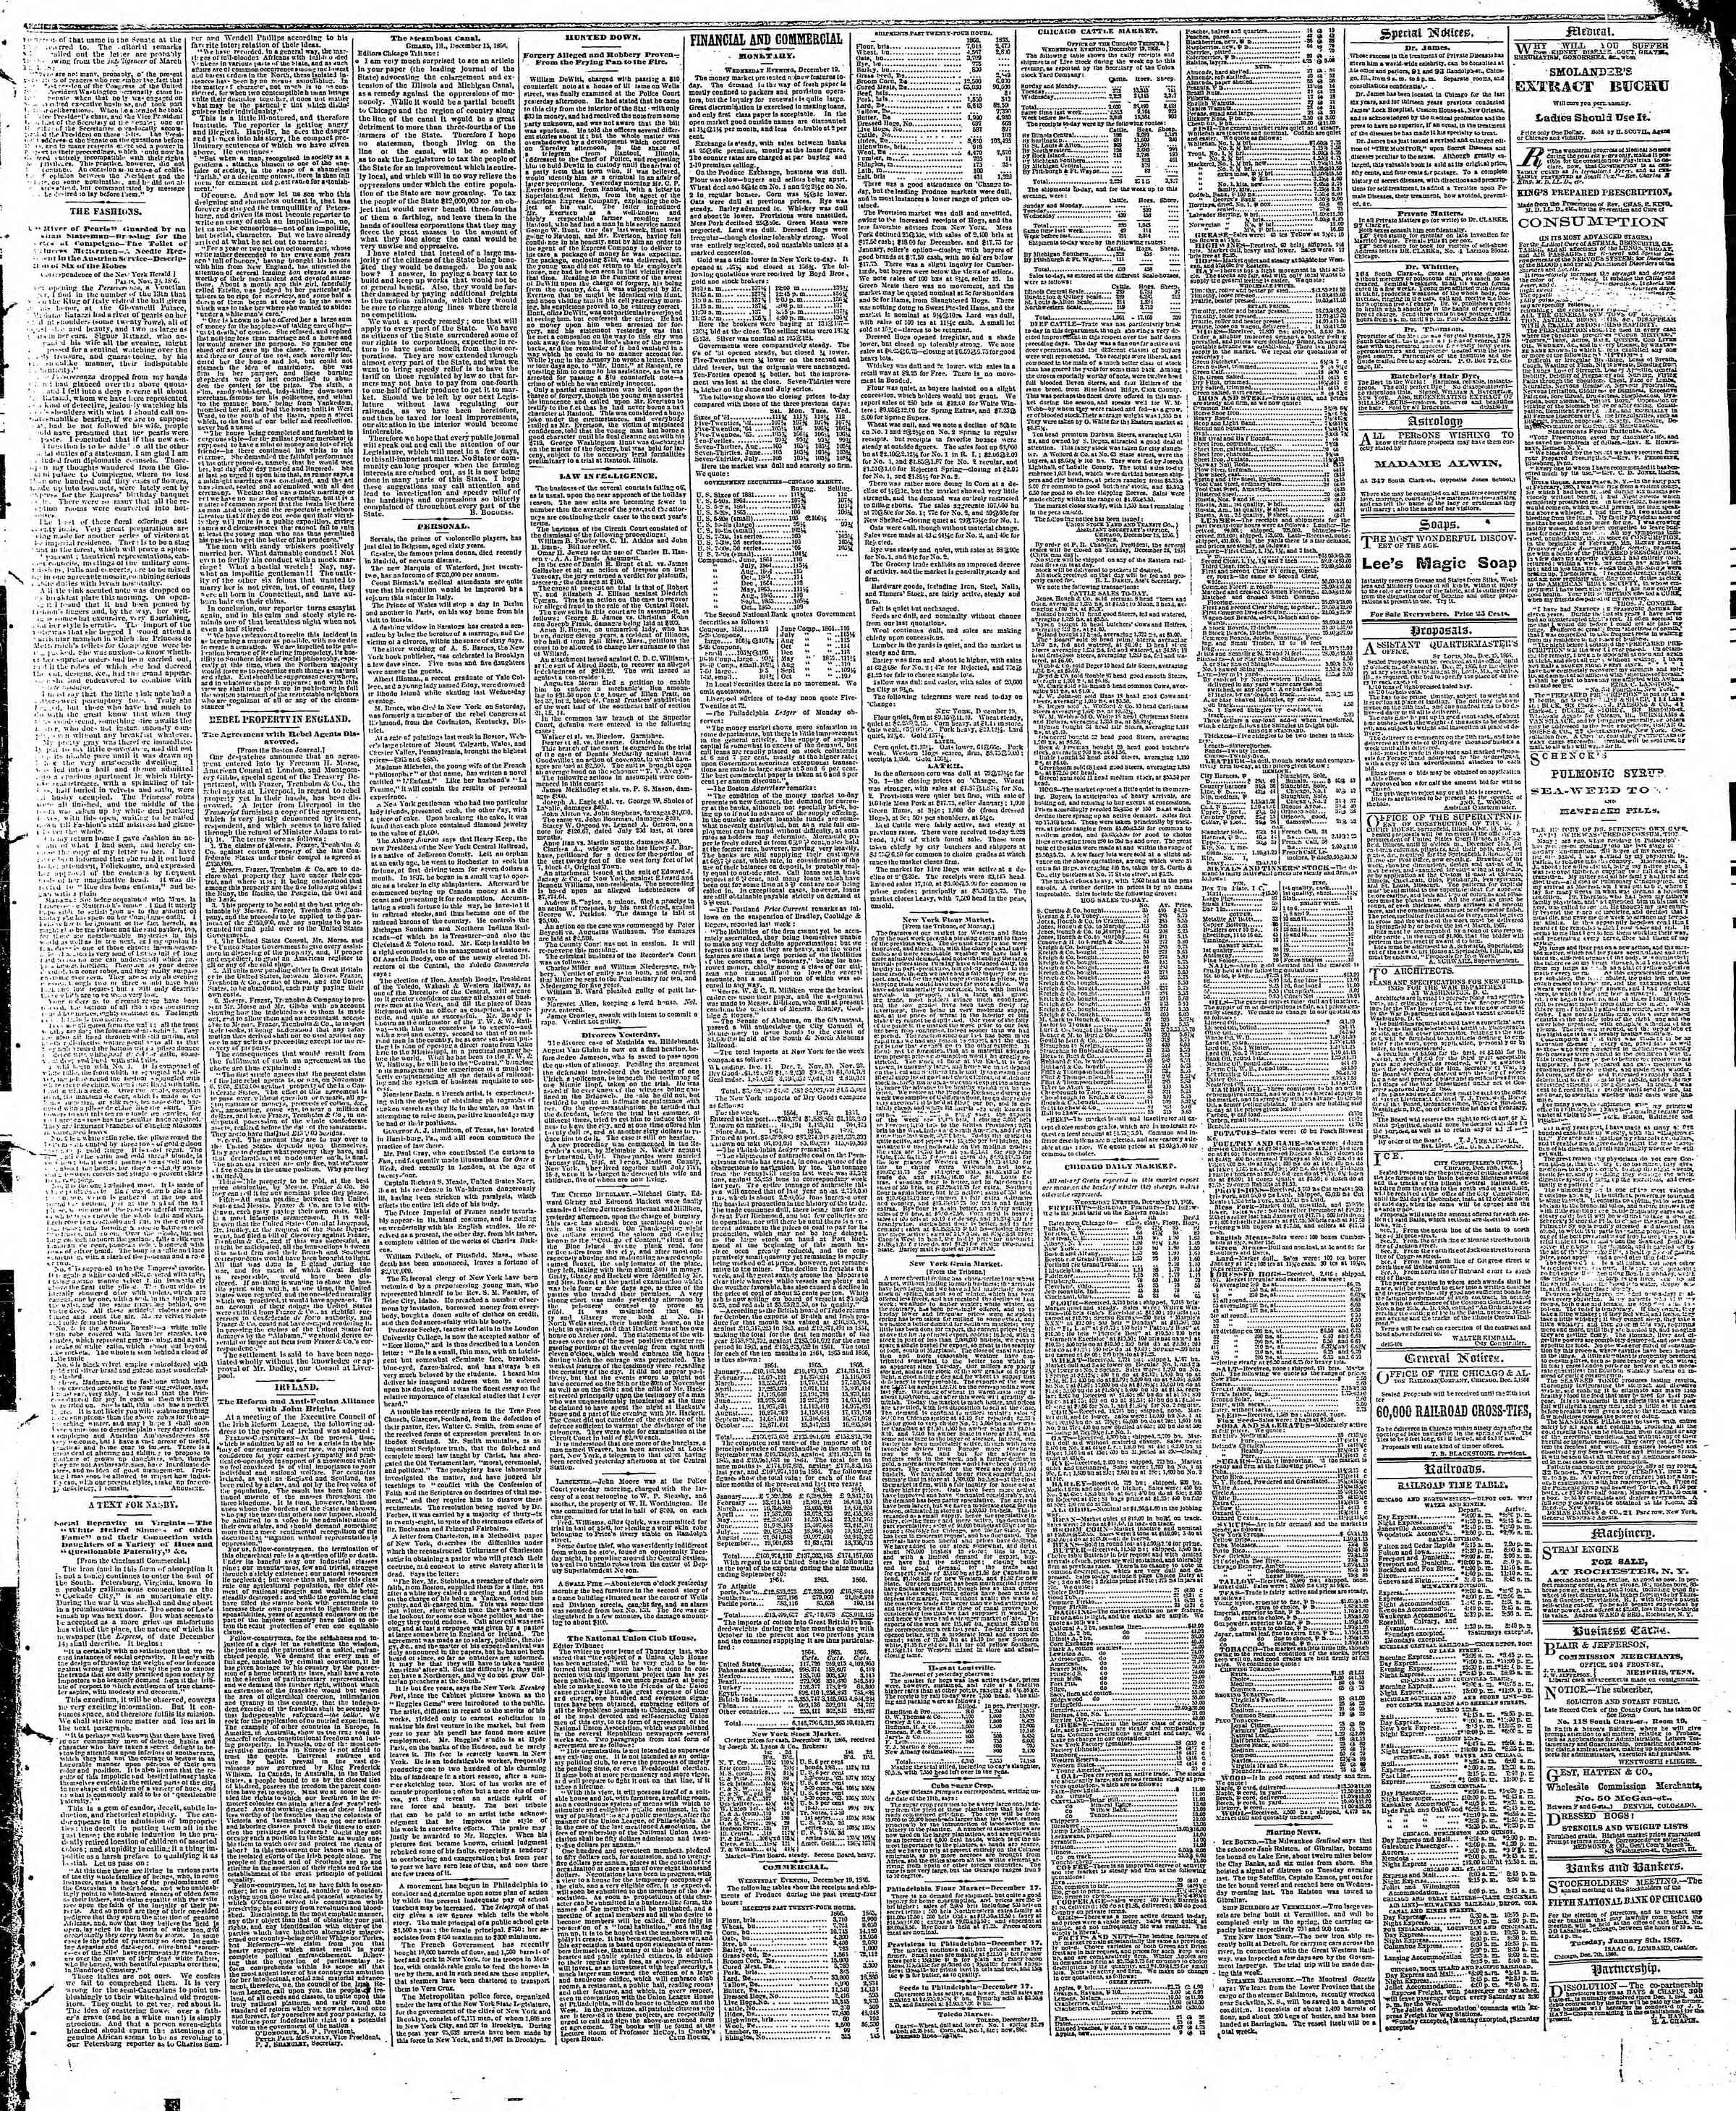 Newspaper of The Chicago Tribune dated 20 Aralık 1866 Page 3